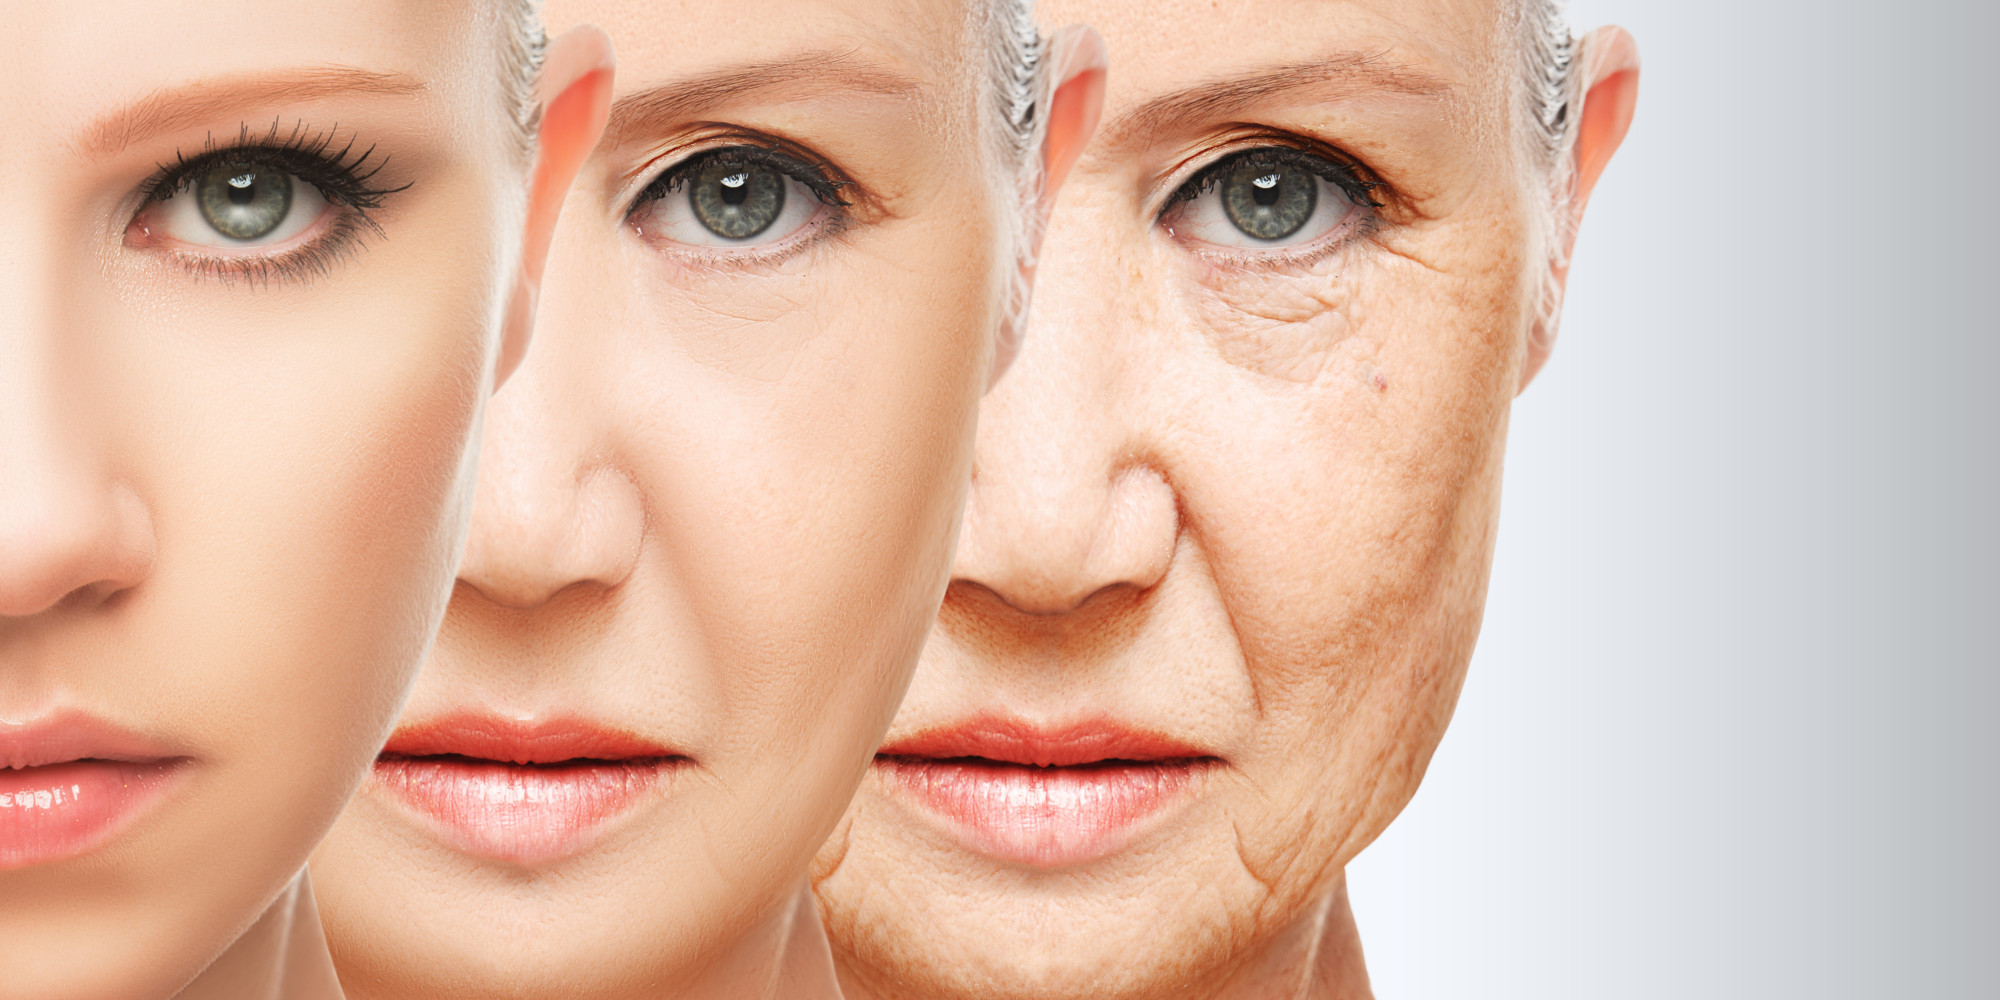 Is Your Diet Ageing Your Face? 5 Tips For Weight Loss That Won't Age ...